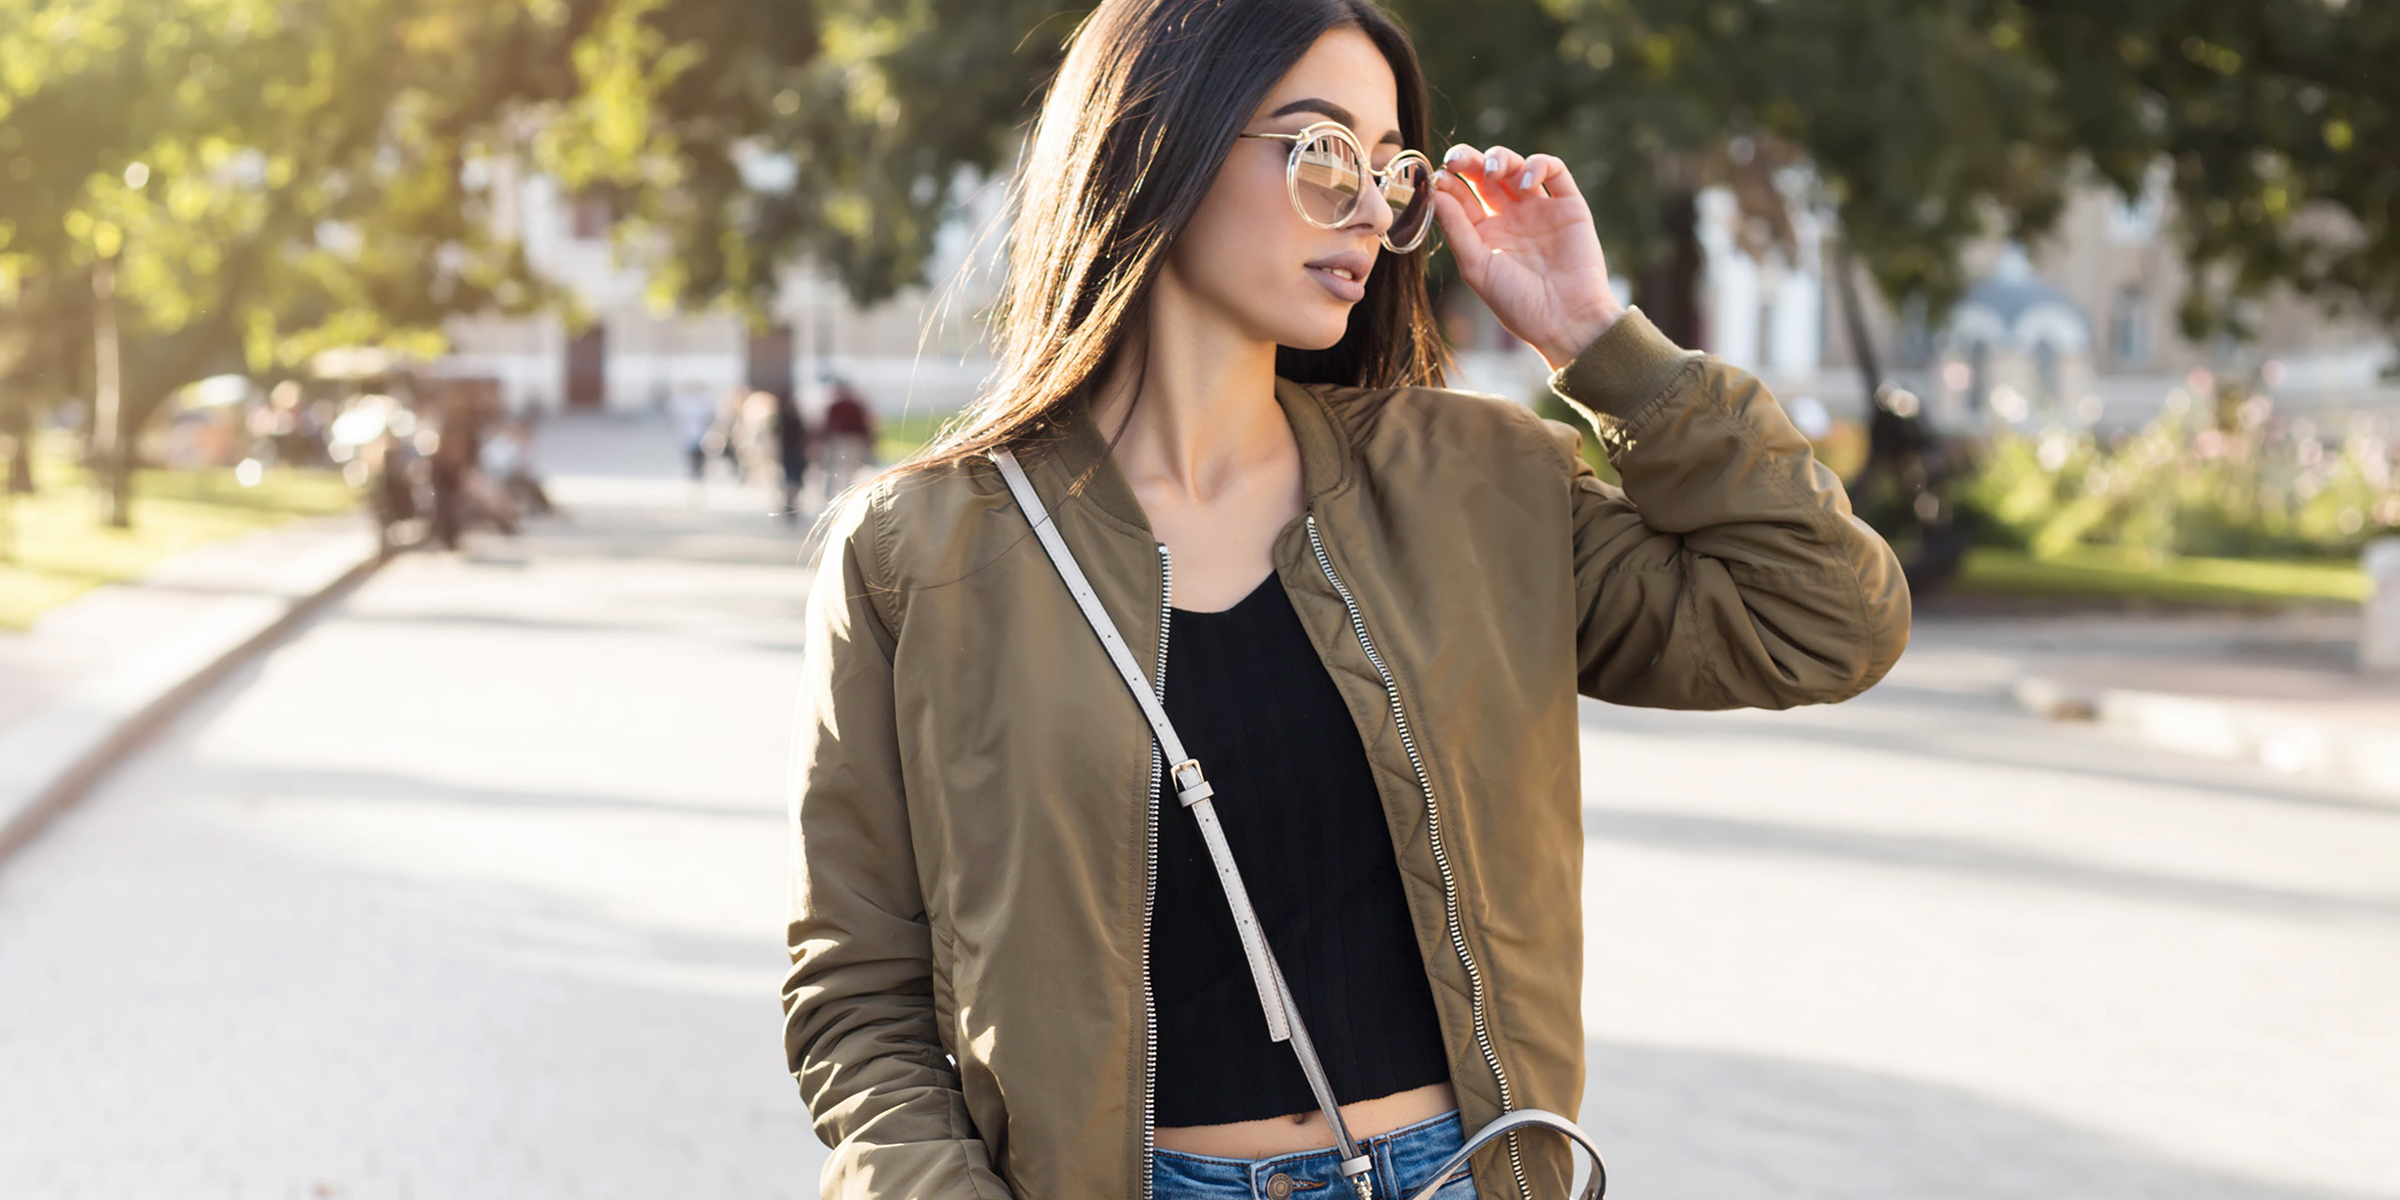 d146aa5fe These are the best women's bomber jackets for fall 2018